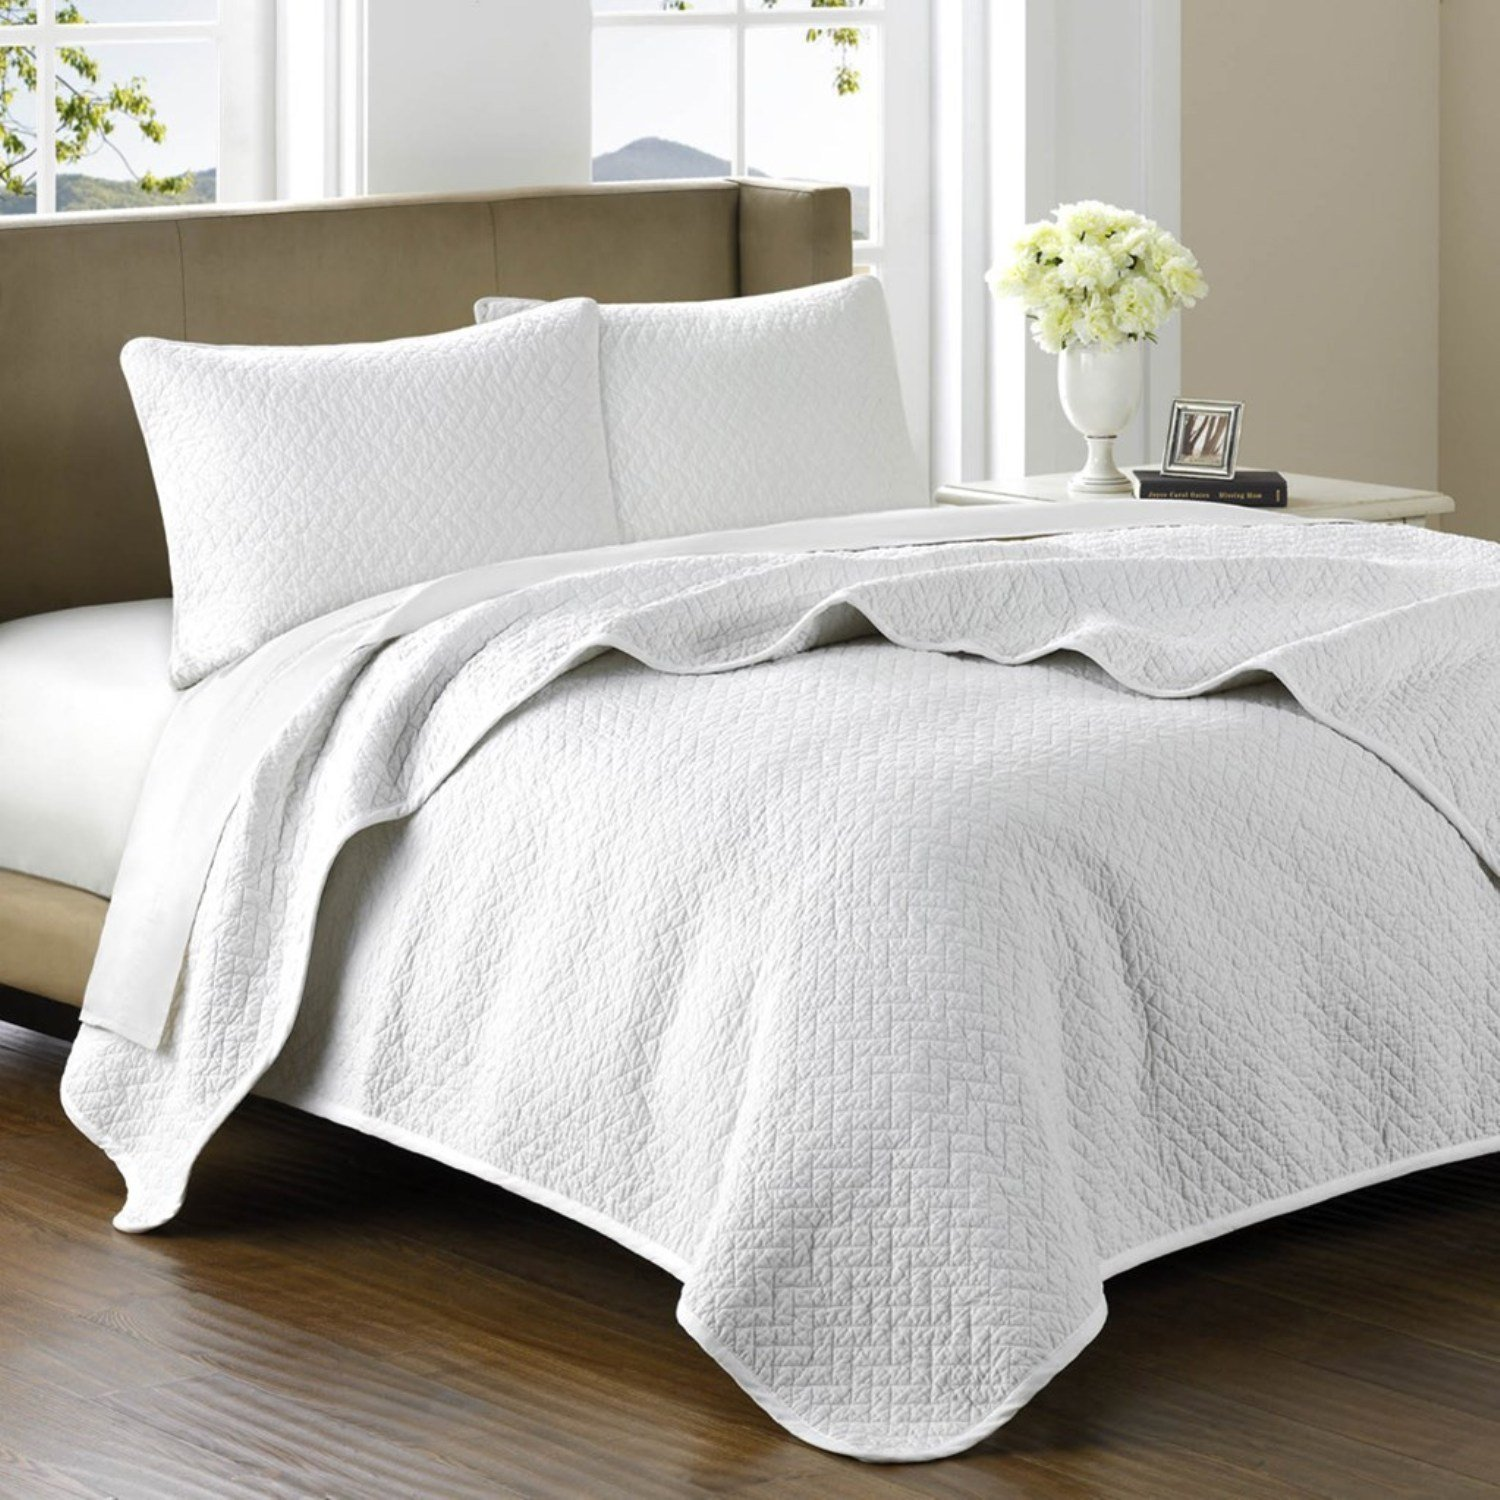 Awesome Amazon.com: Hampton Hill Bellville Cotton Quilted Coverlet Set, Queen,  White: Home U0026 Kitchen